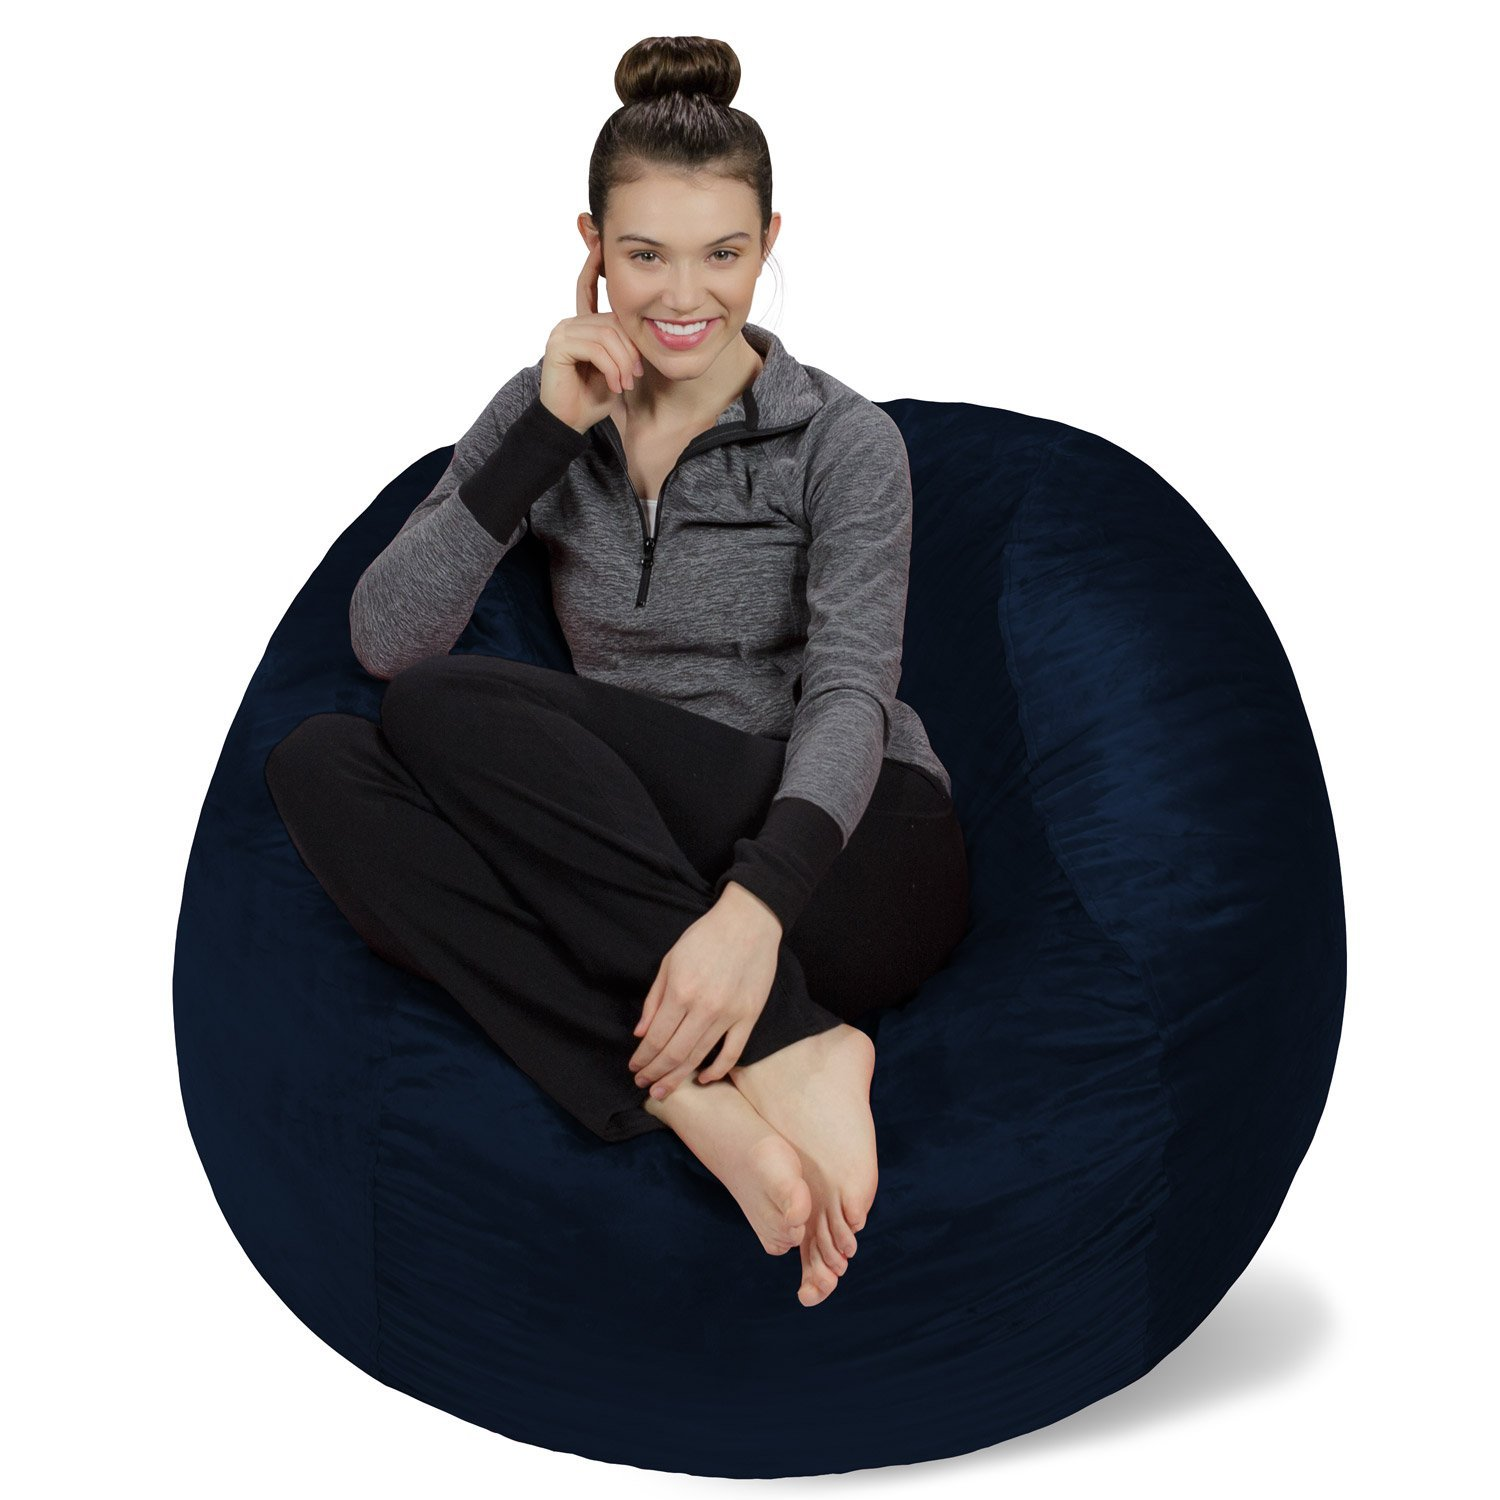 Sofa Sack - Plush, Ultra Soft Bean Bag Chair - Memory Foam Bean Bag Chair with Microsuede Cover - Stuffed Foam Filled Furniture and Accessories for Dorm Room - Navy 4' by Sofa Sack - Bean Bags